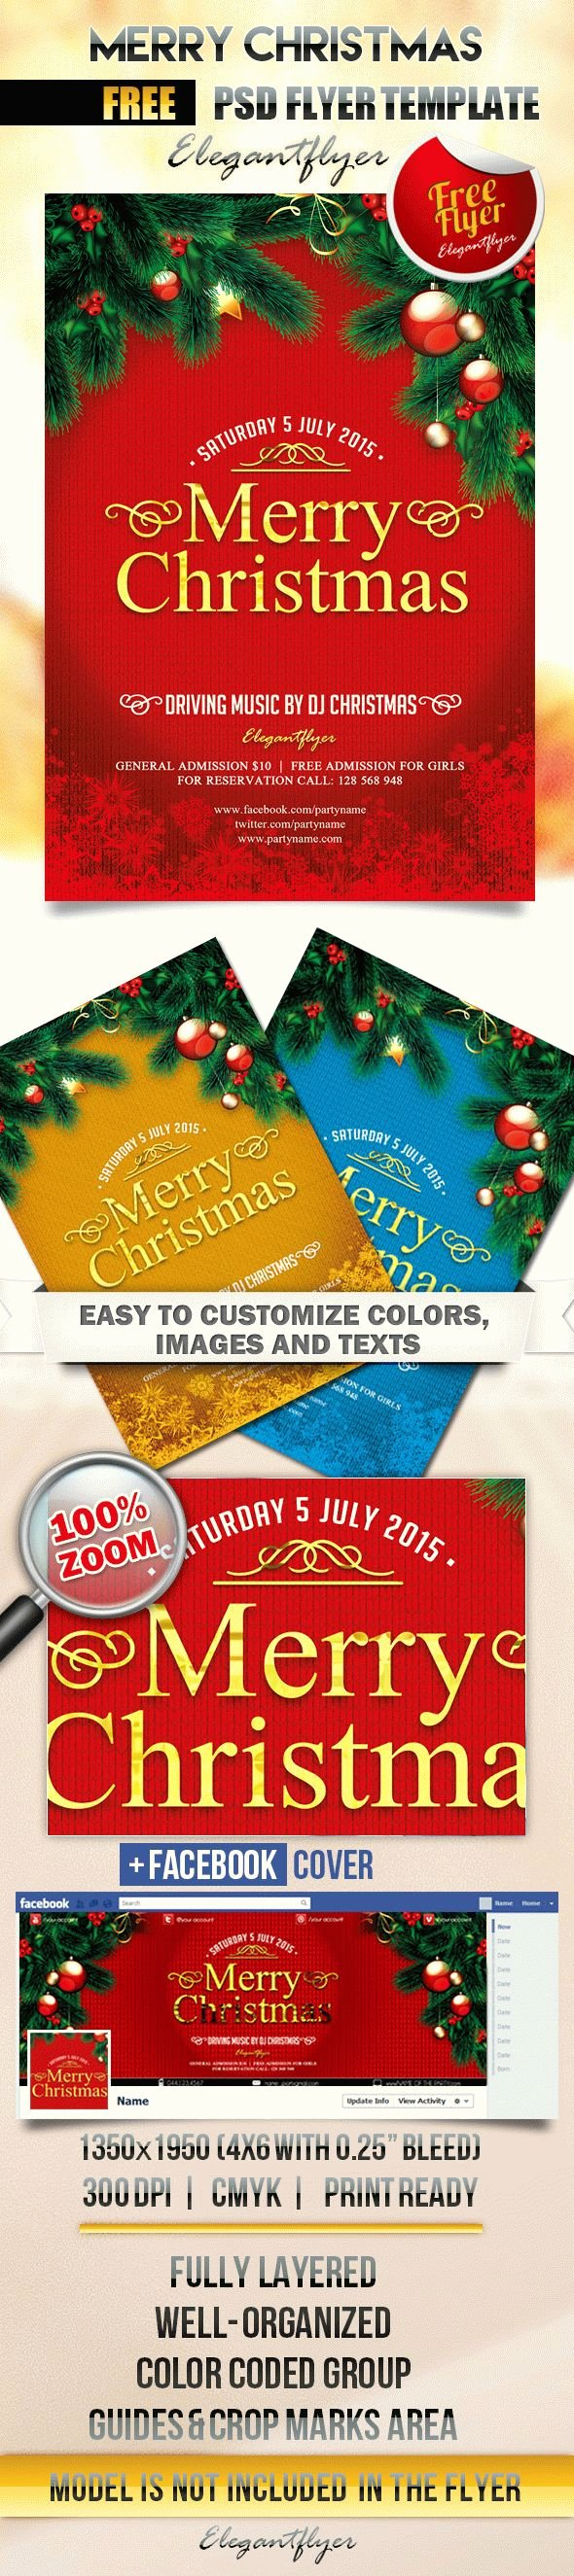 Free Christmas Flyer Templates New Free Printable Christmas Tree Template – by Elegantflyer